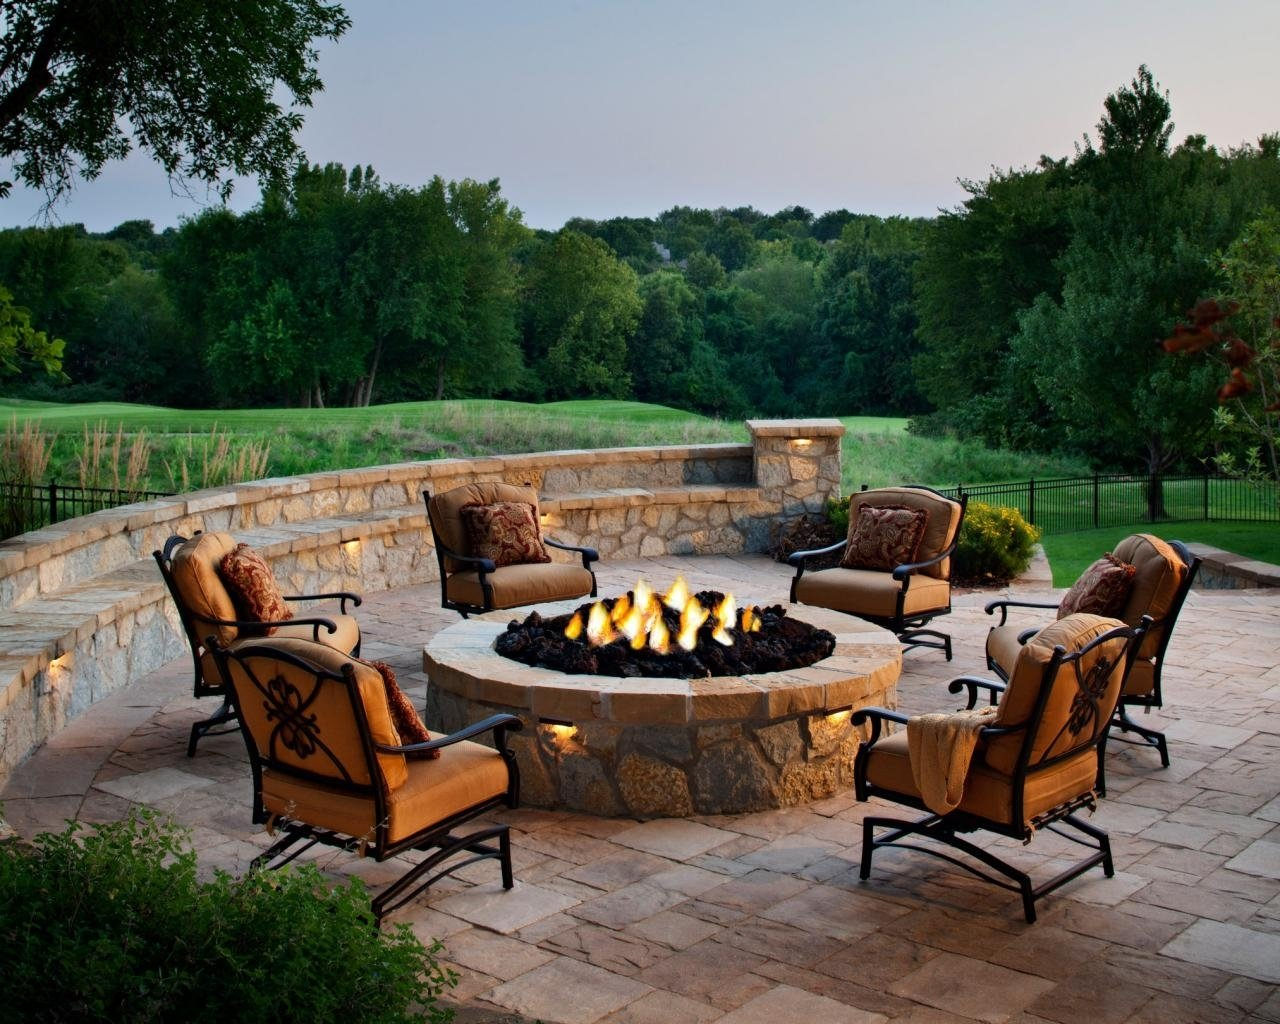 10 Fantastic Outdoor Patio Ideas With Fire Pit related to fire pits designing a patio around pit diy modern garden 2020